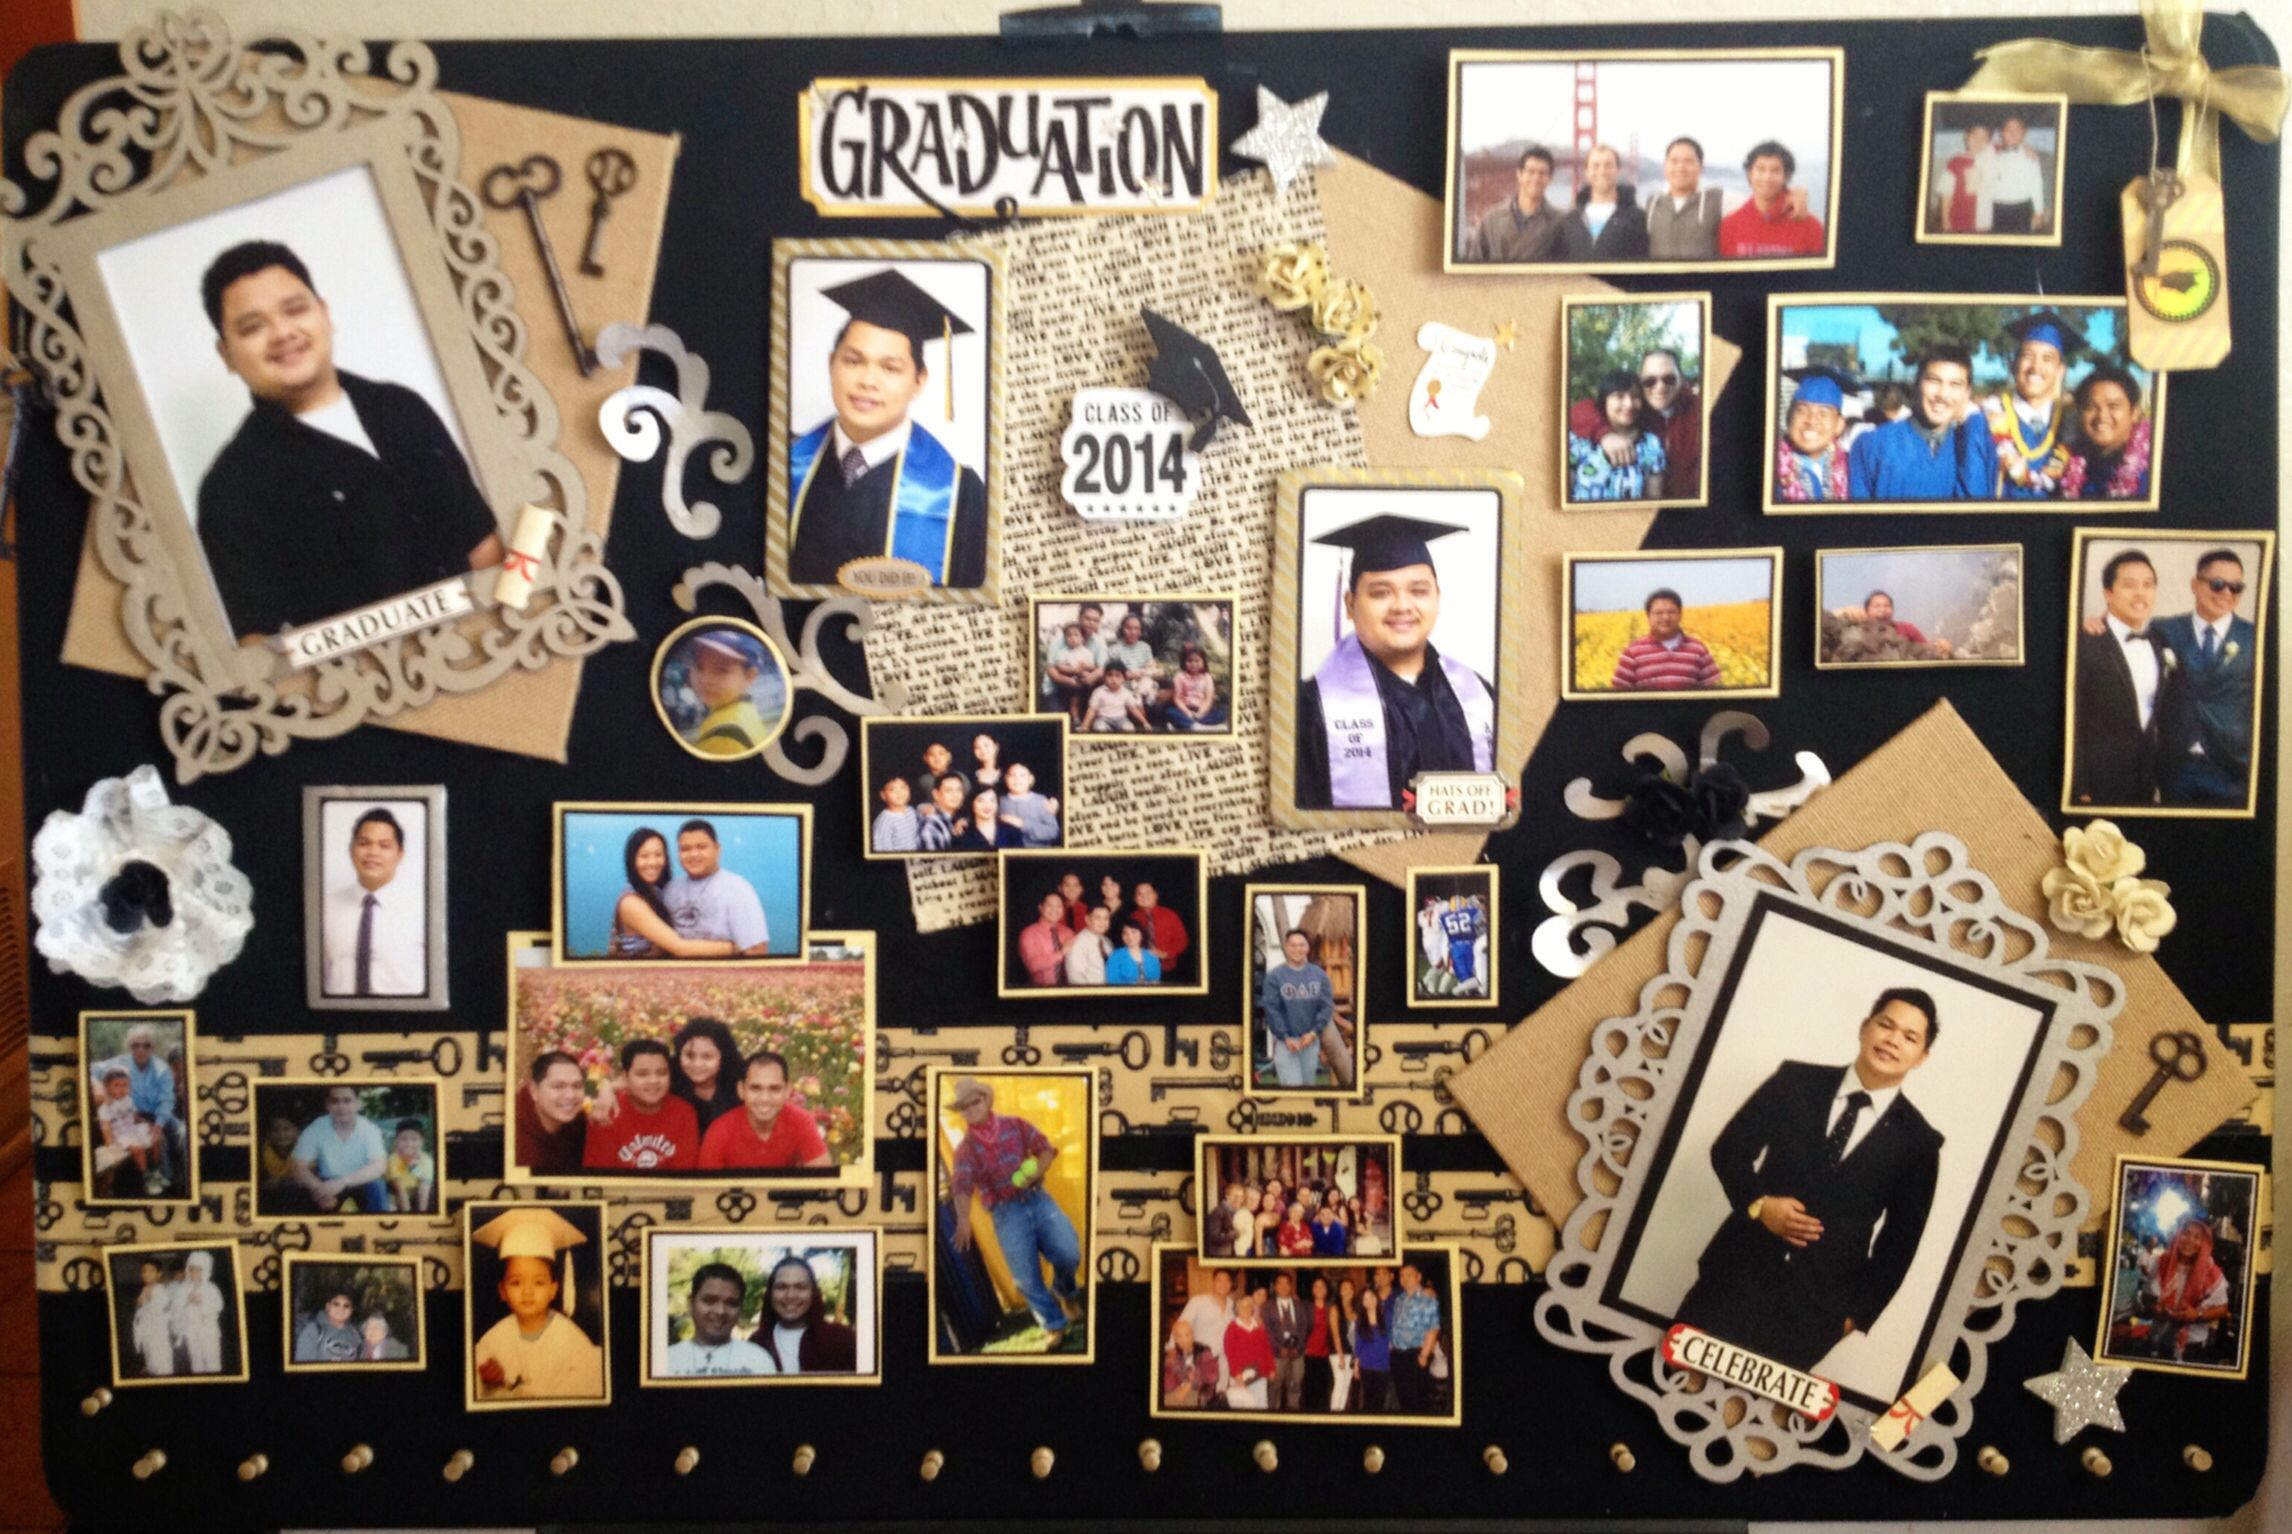 Graduation board for my two brothers who graduated this weekend. Decorated a bulletin board (work by Kristine) with photos, past and present, of them and the people around them. On the bottom are gold push pins, where keys and tags will hang to represent the future (next to this board is a sign that says: Share your key to success!).